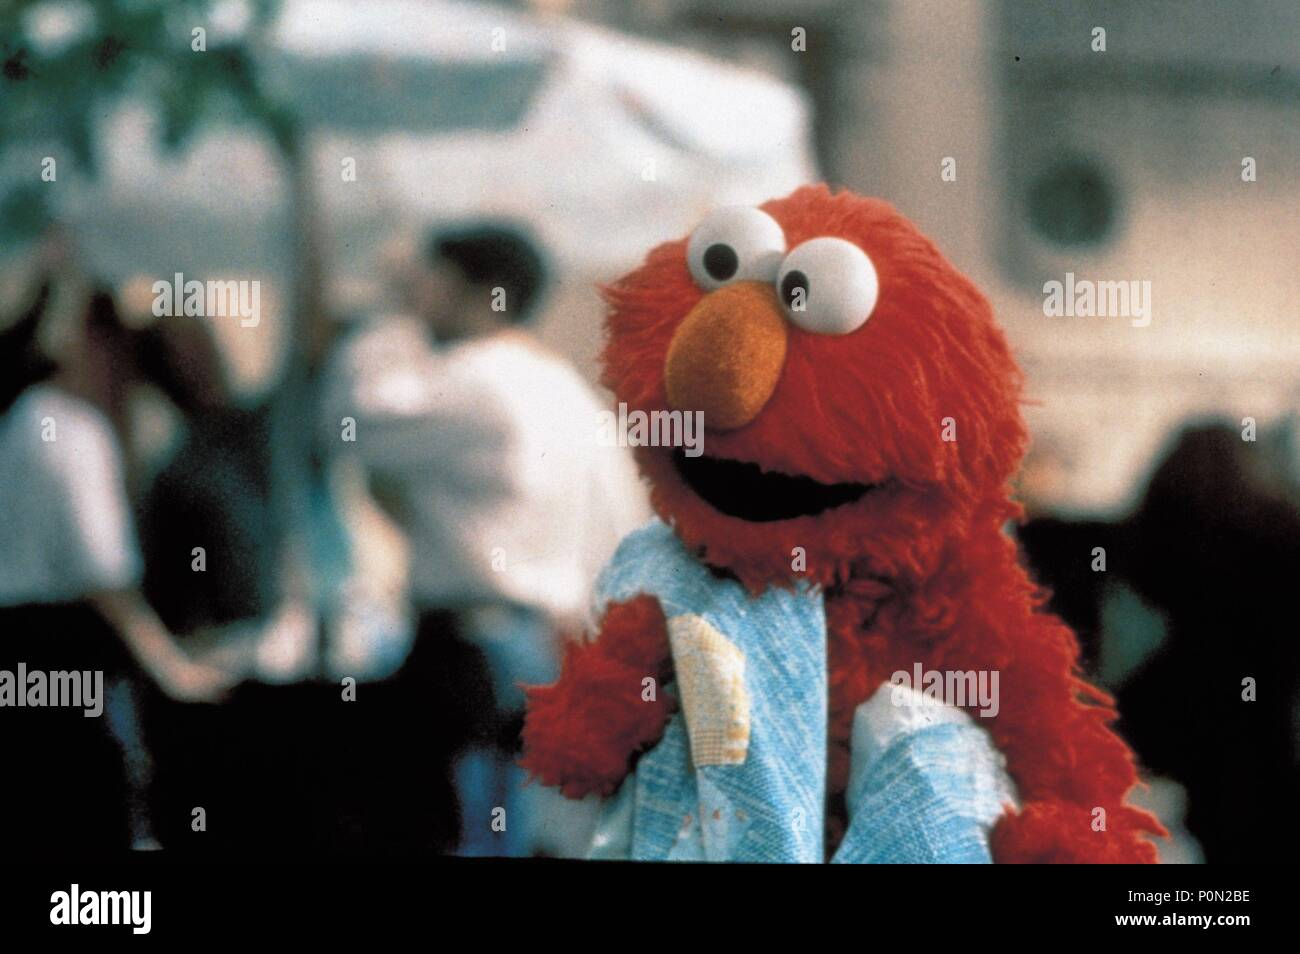 Original Film Title: THE ADVENTURES OF ELMO IN GROUCHLAND.  English Title: THE ADVENTURES OF ELMO IN GROUCHLAND.  Film Director: GARY HALVORSON.  Year: 1999.  Stars: ELMO. Credit: JIM HENSON PRODUCTIONS / Album Stock Photo